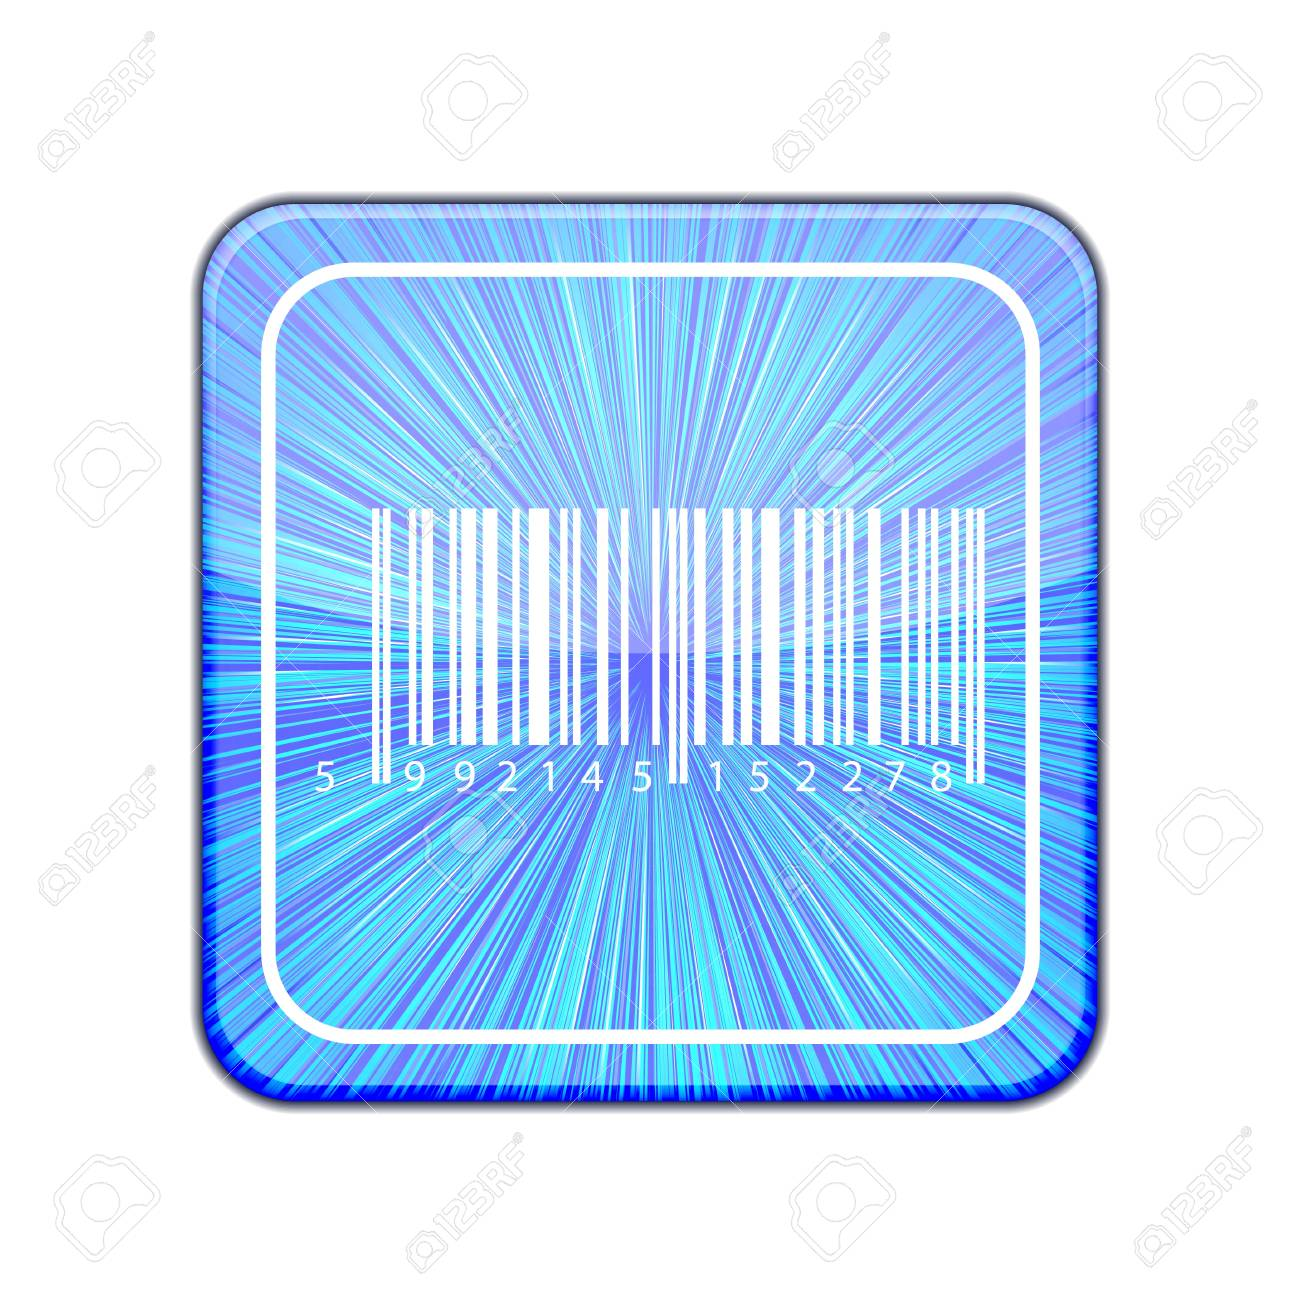 Vector version. Bar code icon. Stock Vector - 15436775